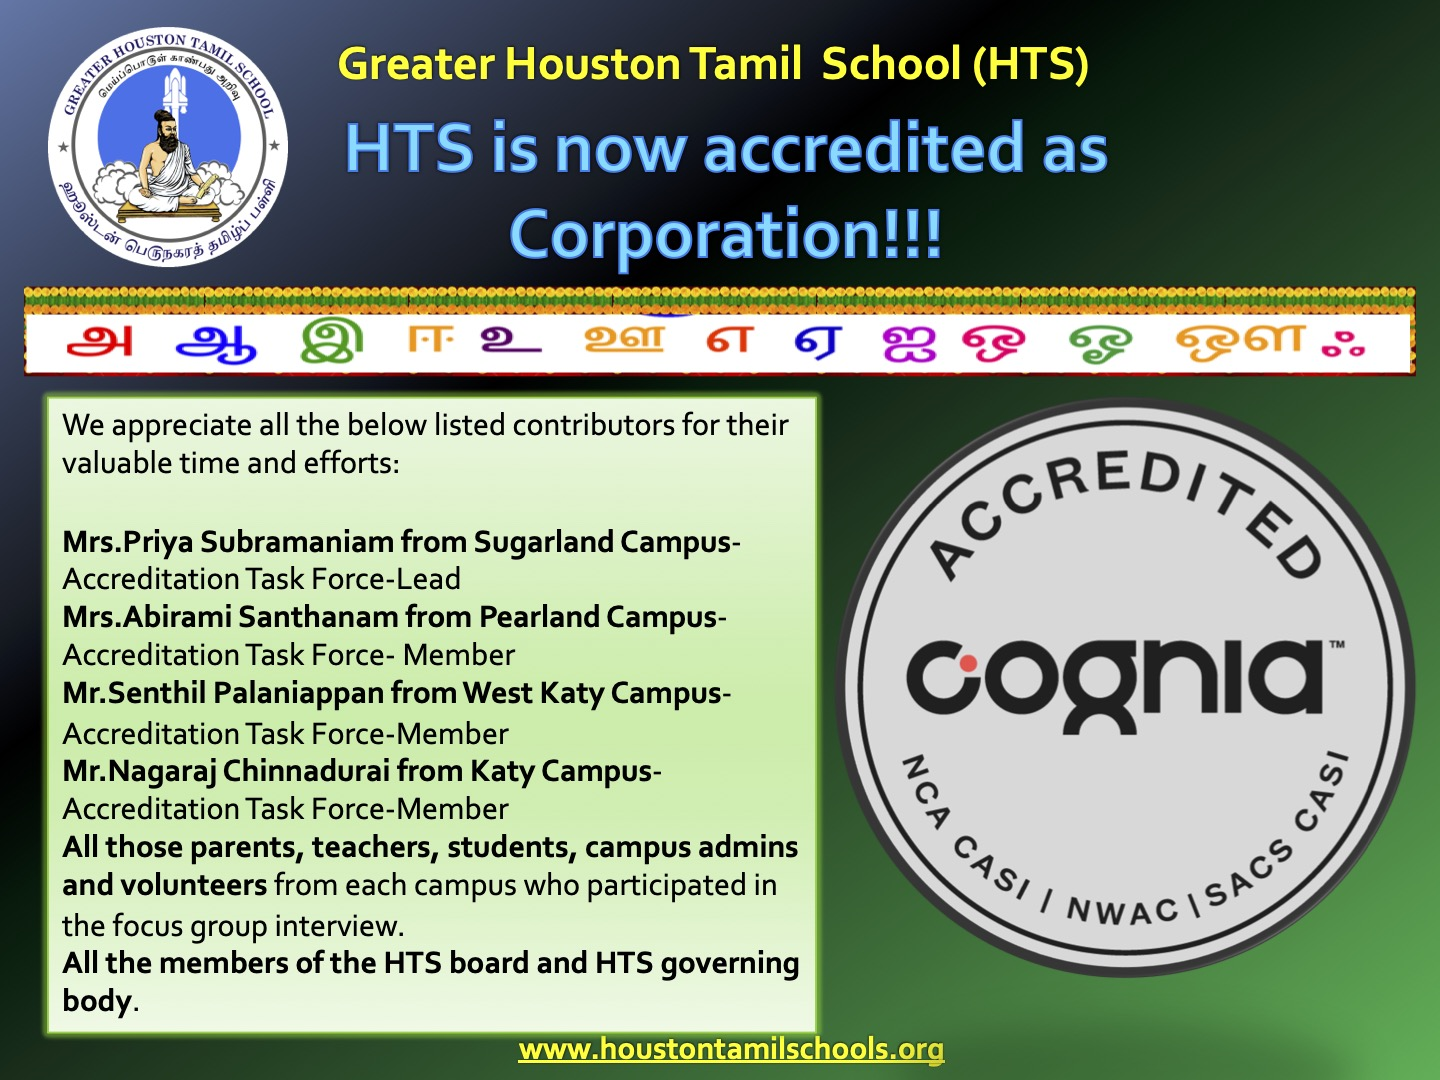 HTS is now accredited as Corporation